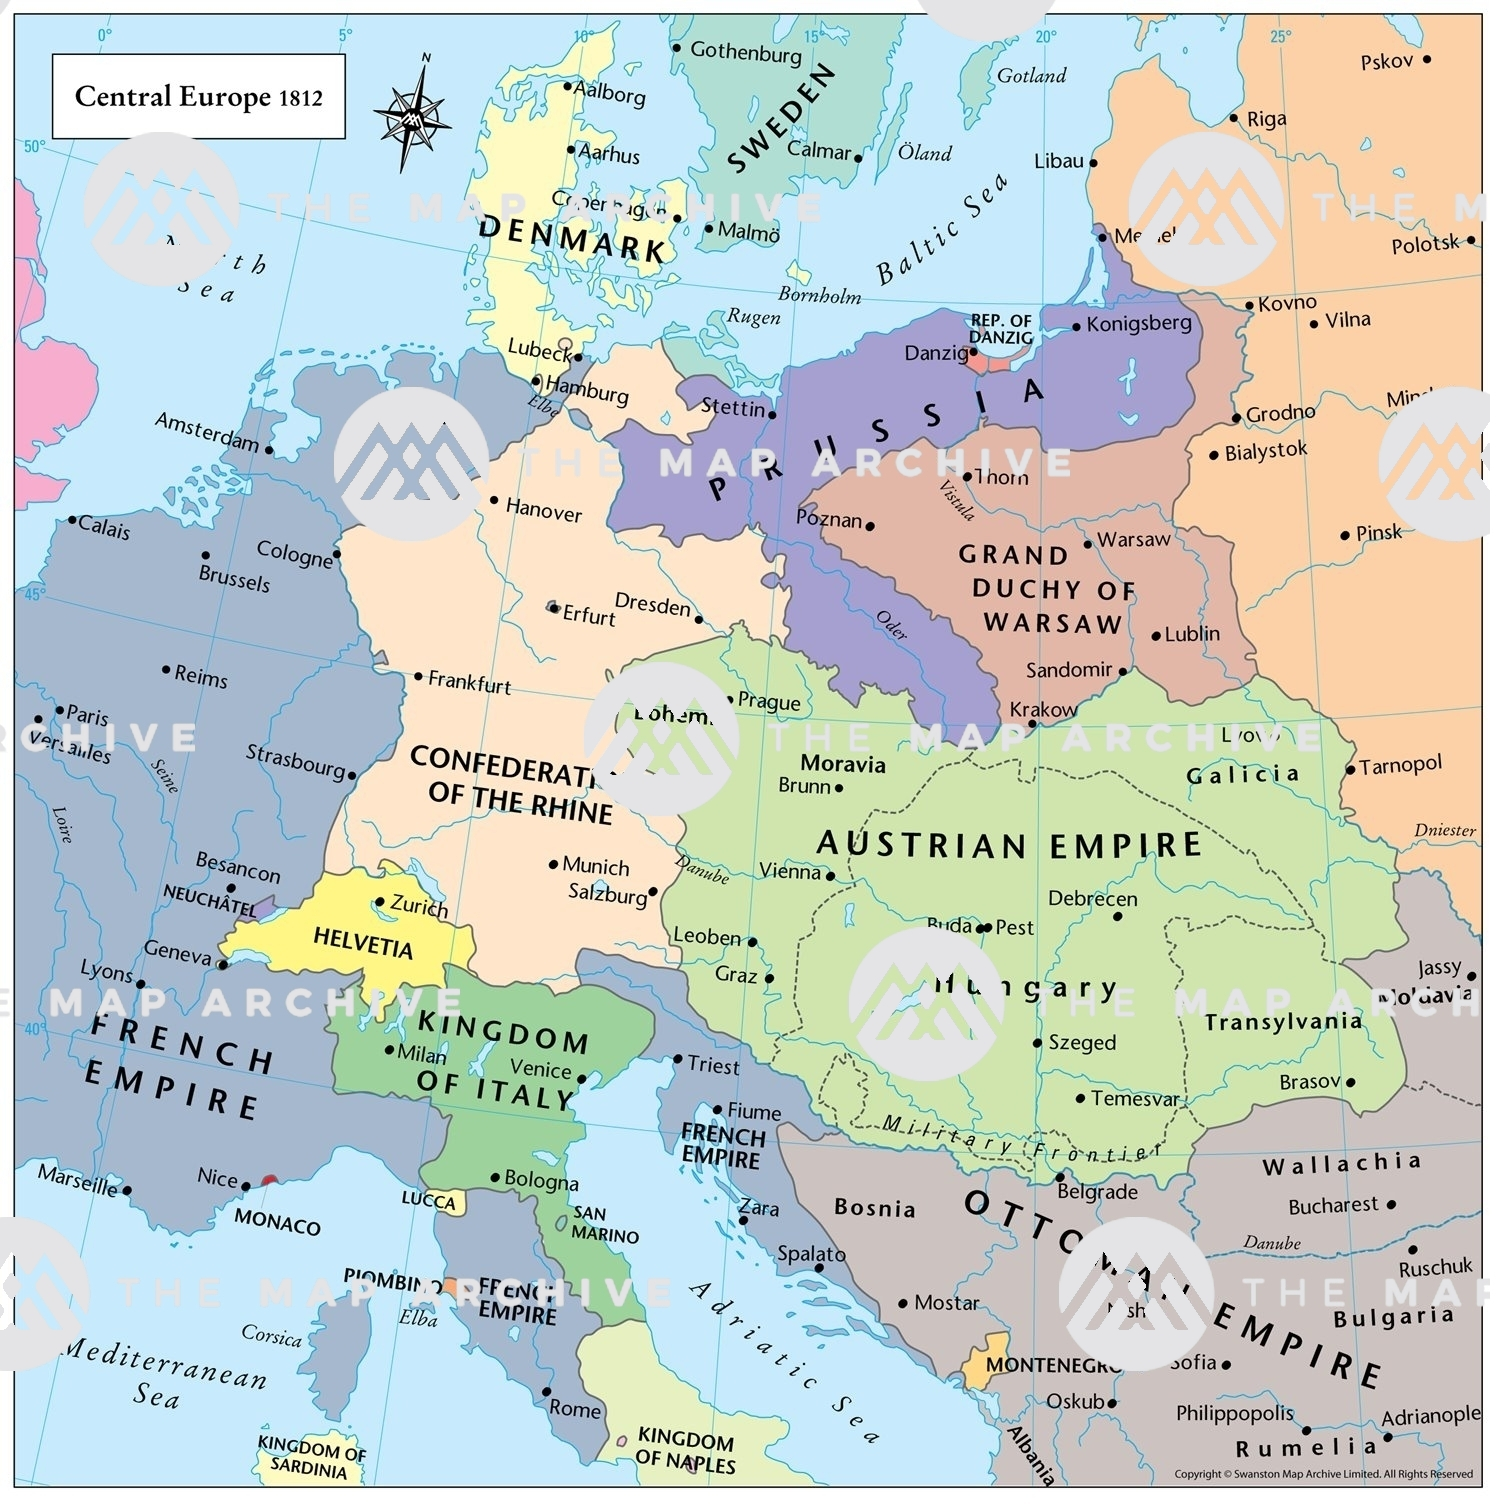 Central Europe 1812